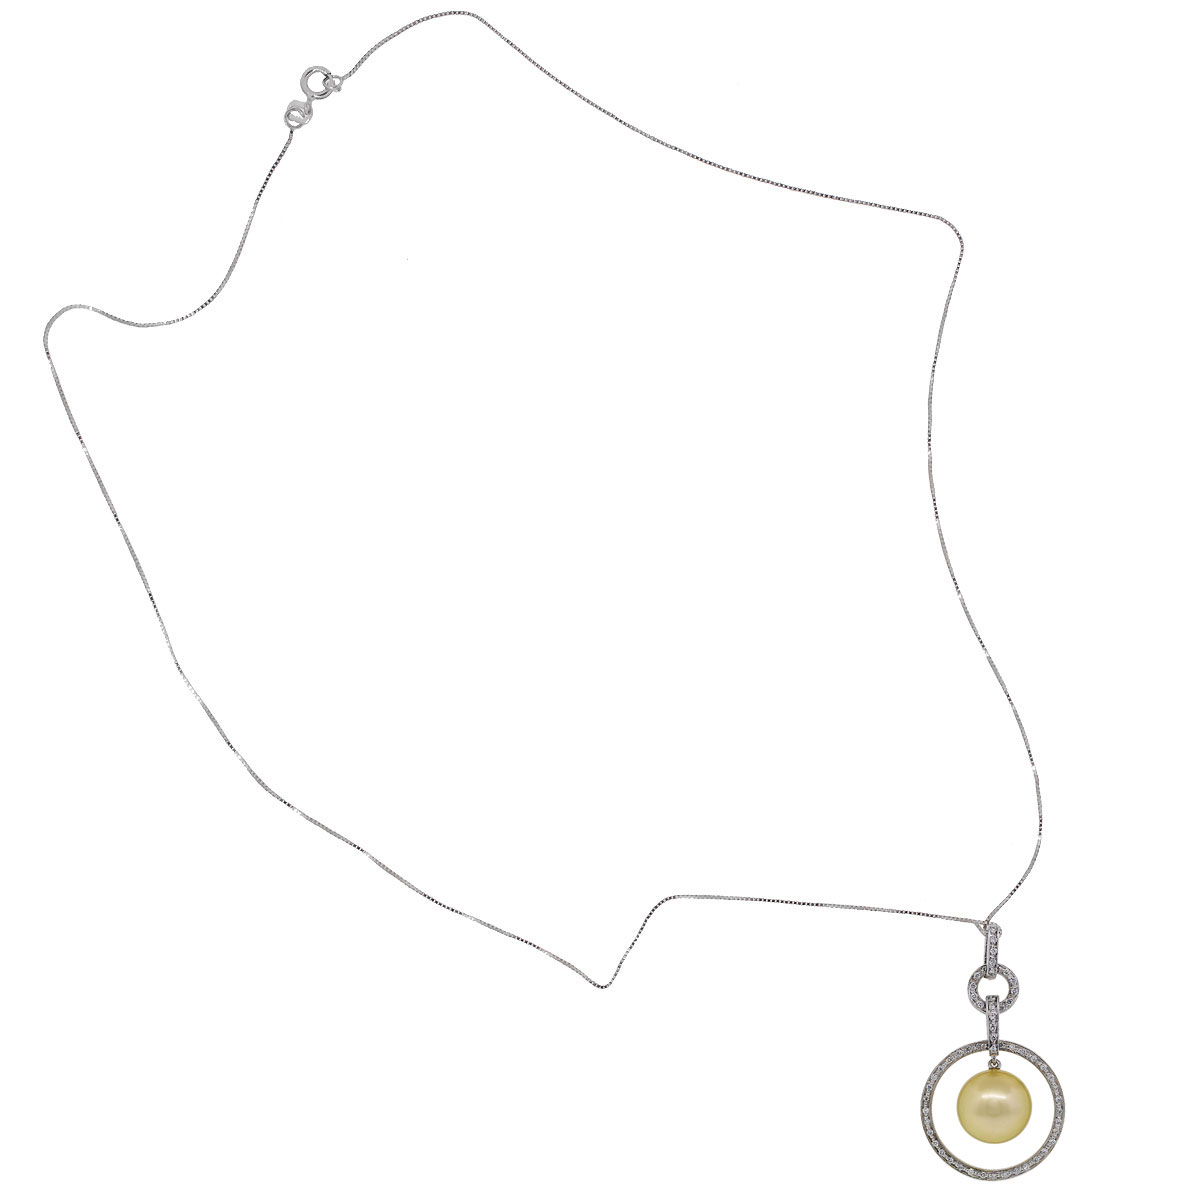 Iridesse Pearl Pendant Necklace